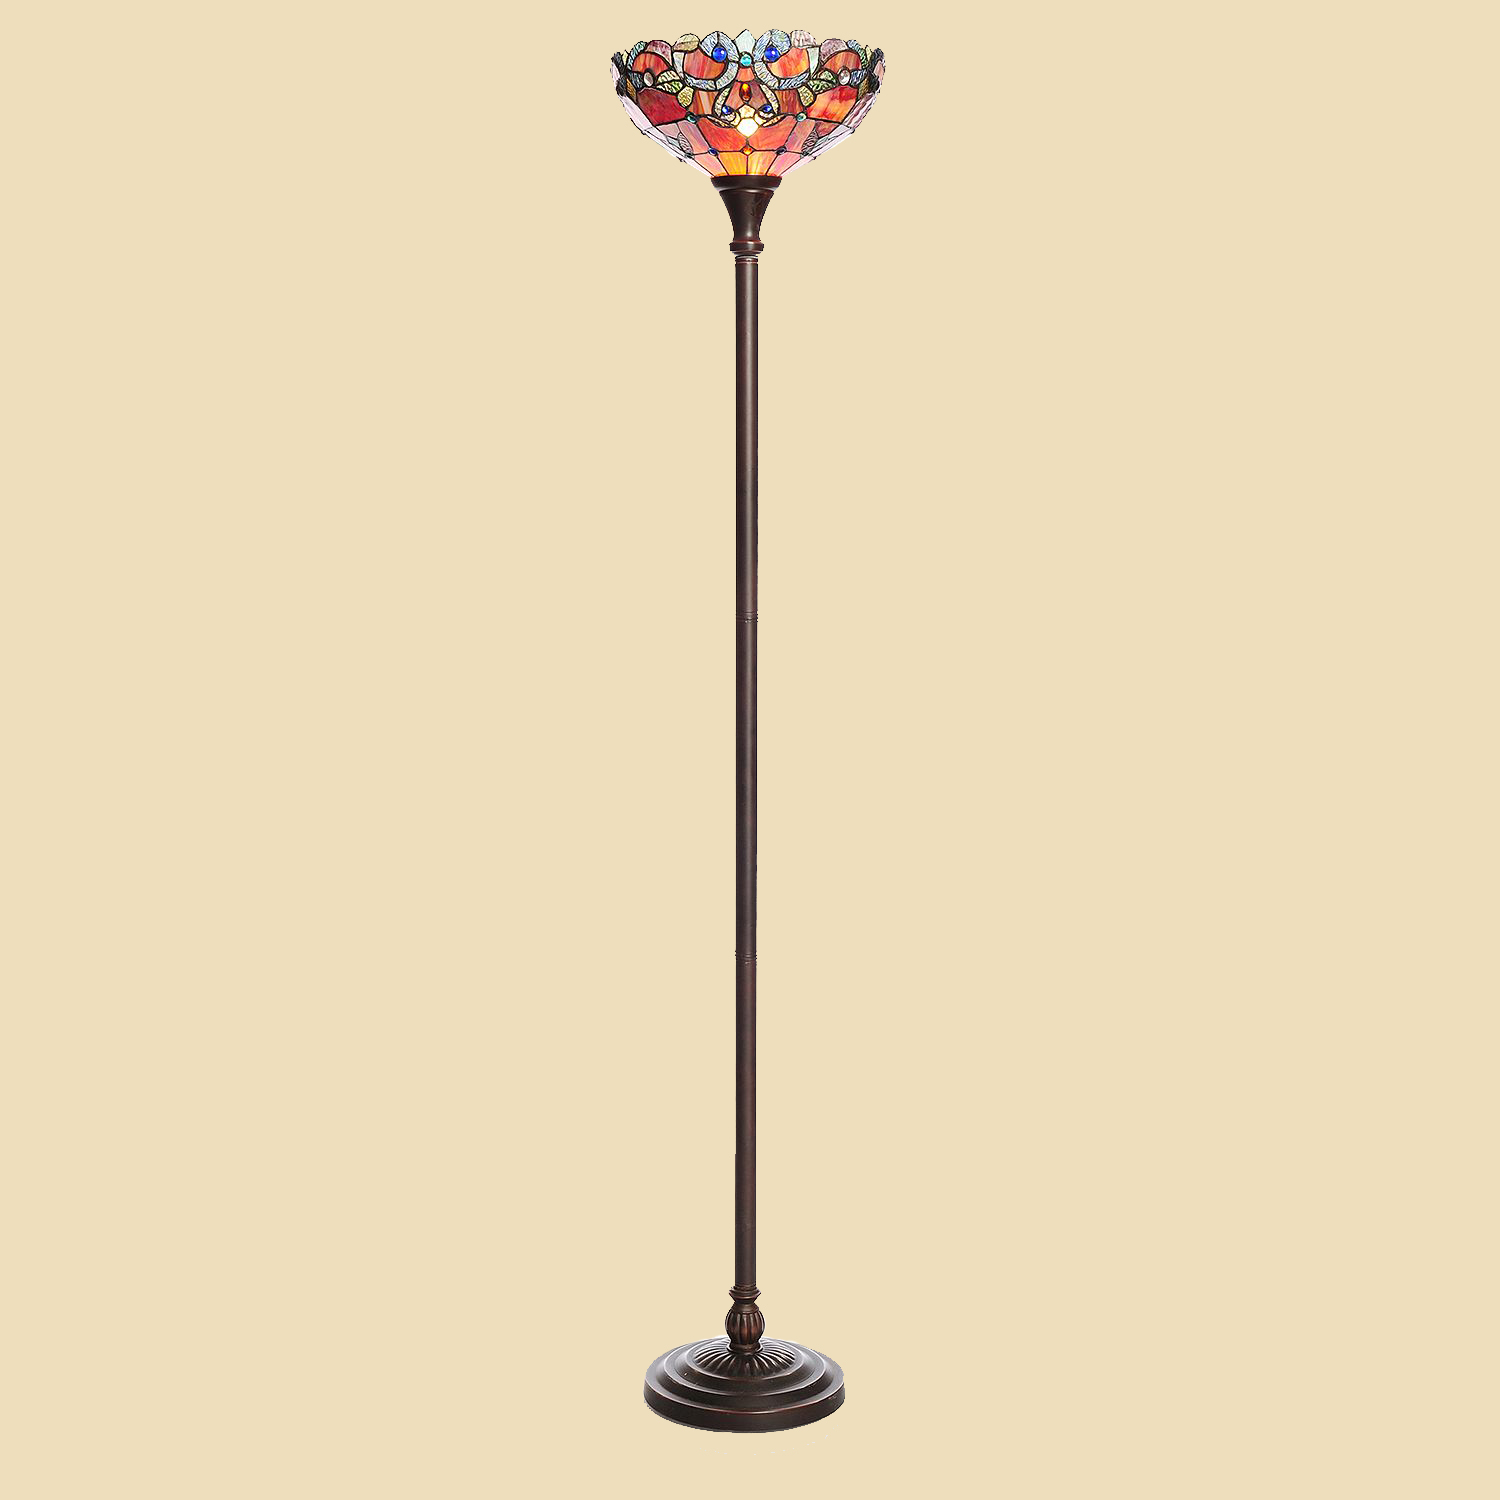 Tiffany style stained glass magna carta floor lamp spice for Tiffany style floor lamp canada